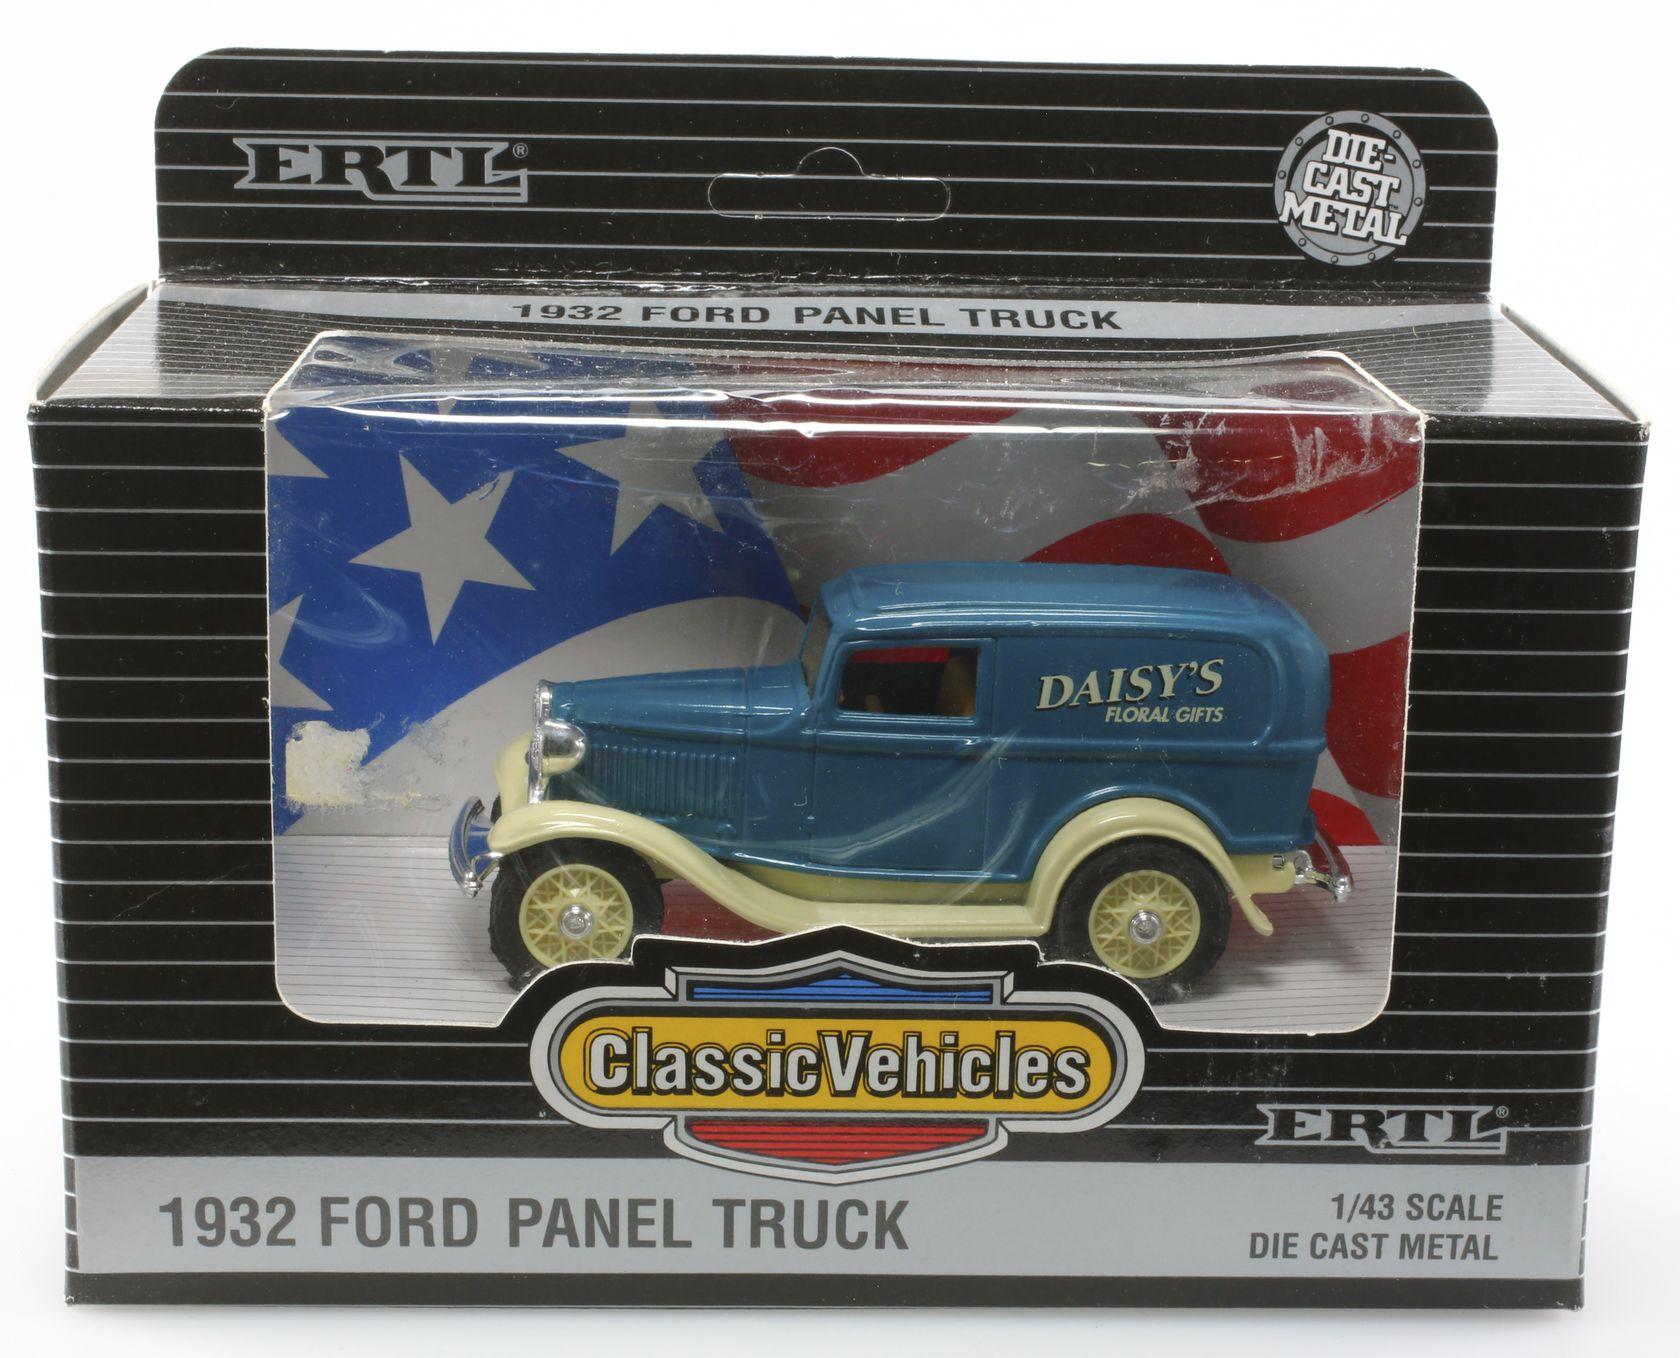 Ford Panel Daisy's 1932 1/43